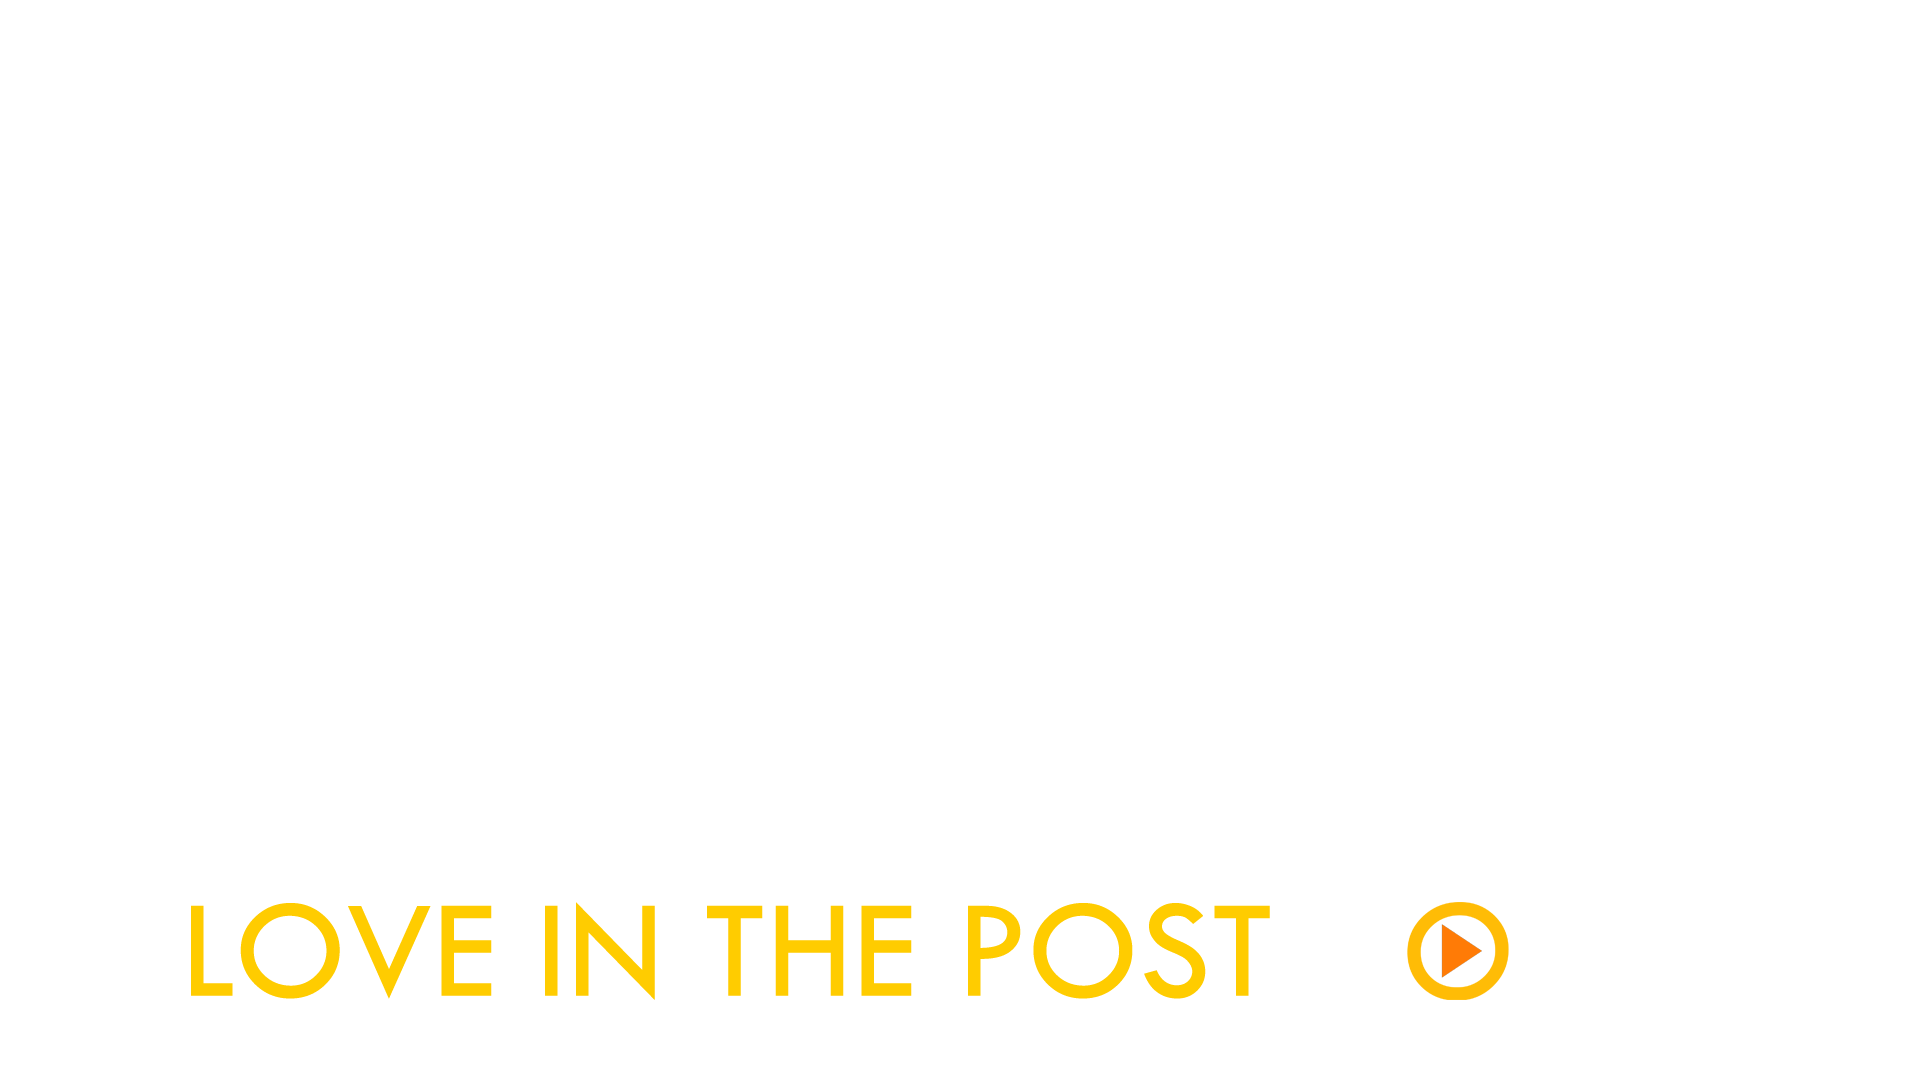 Love-in-the-post-1920x1080